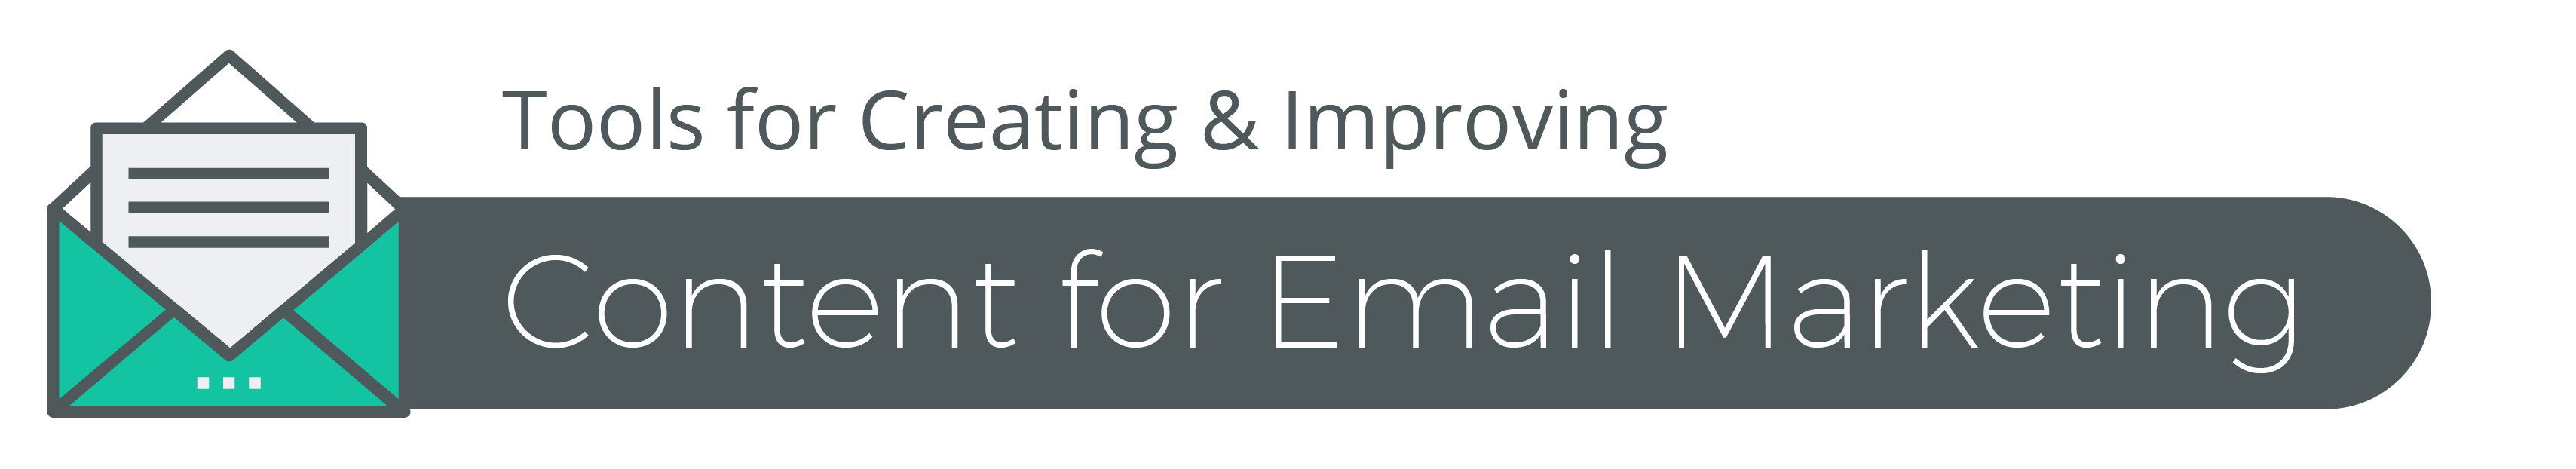 top content creation tools for email marketing